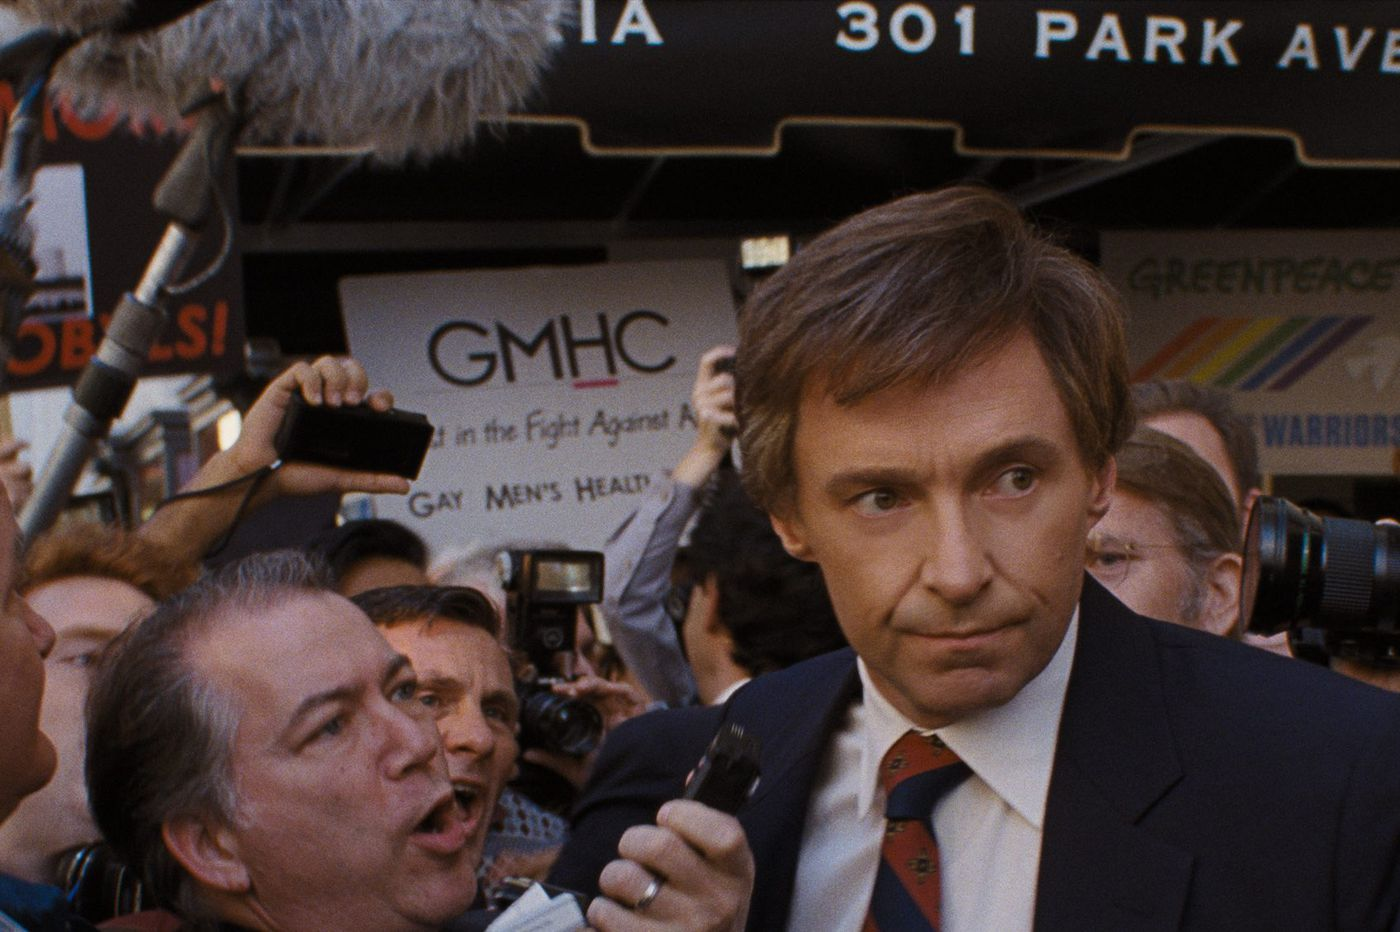 'The Front Runner' sees the rise of modern media dysfunction in the fall of Gary Hart